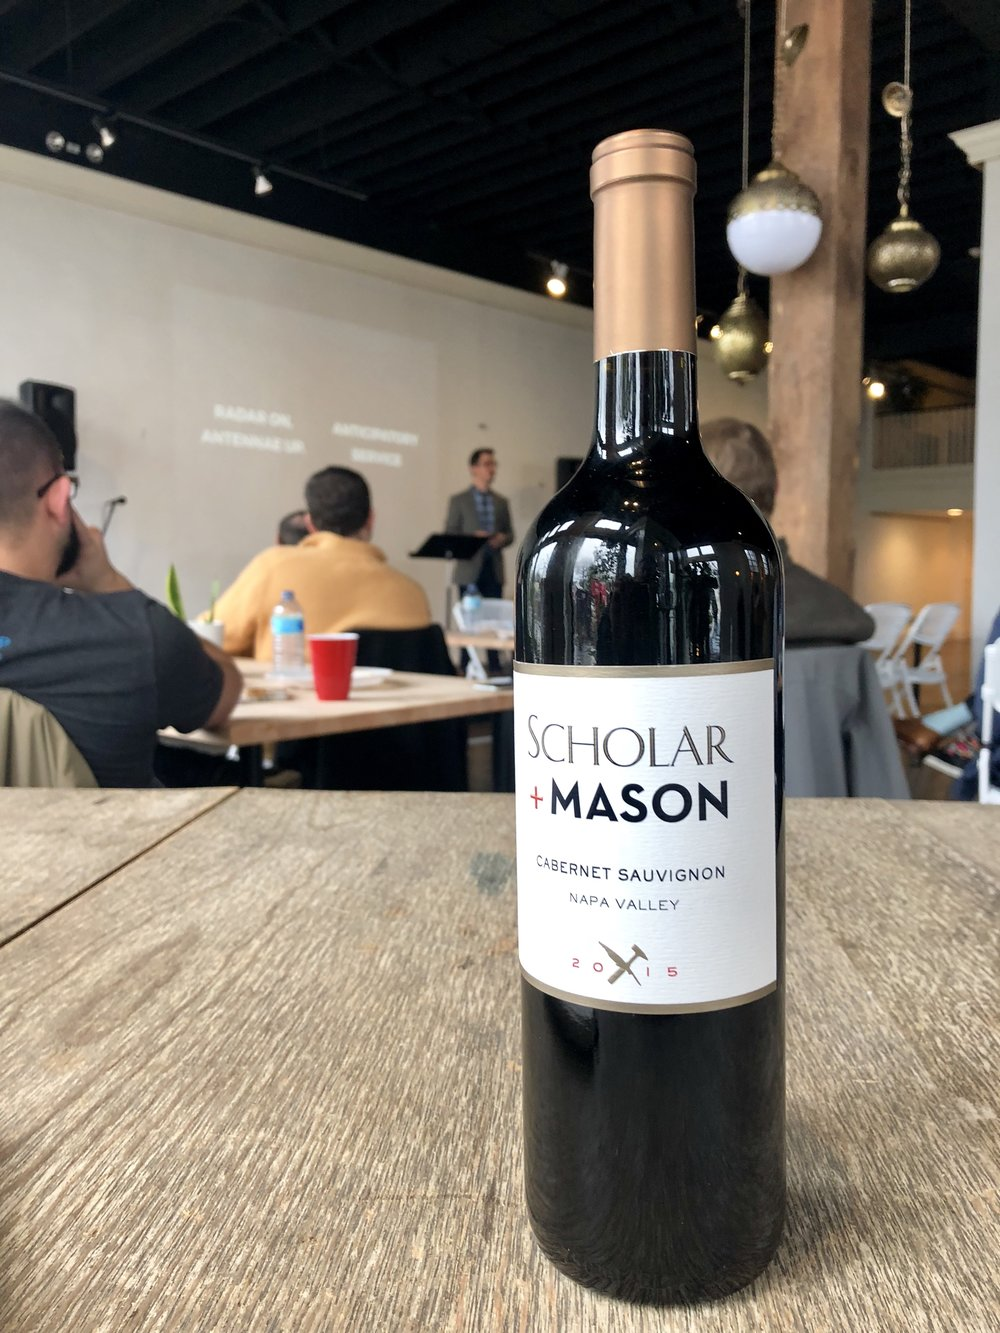 Wine Giveaway - Each month we give away a bottle of Napa Valley wine, as a reminder to each of us of how collaborating and sharing ideas and resources will make us and our organizations stronger if we show up with that intent.